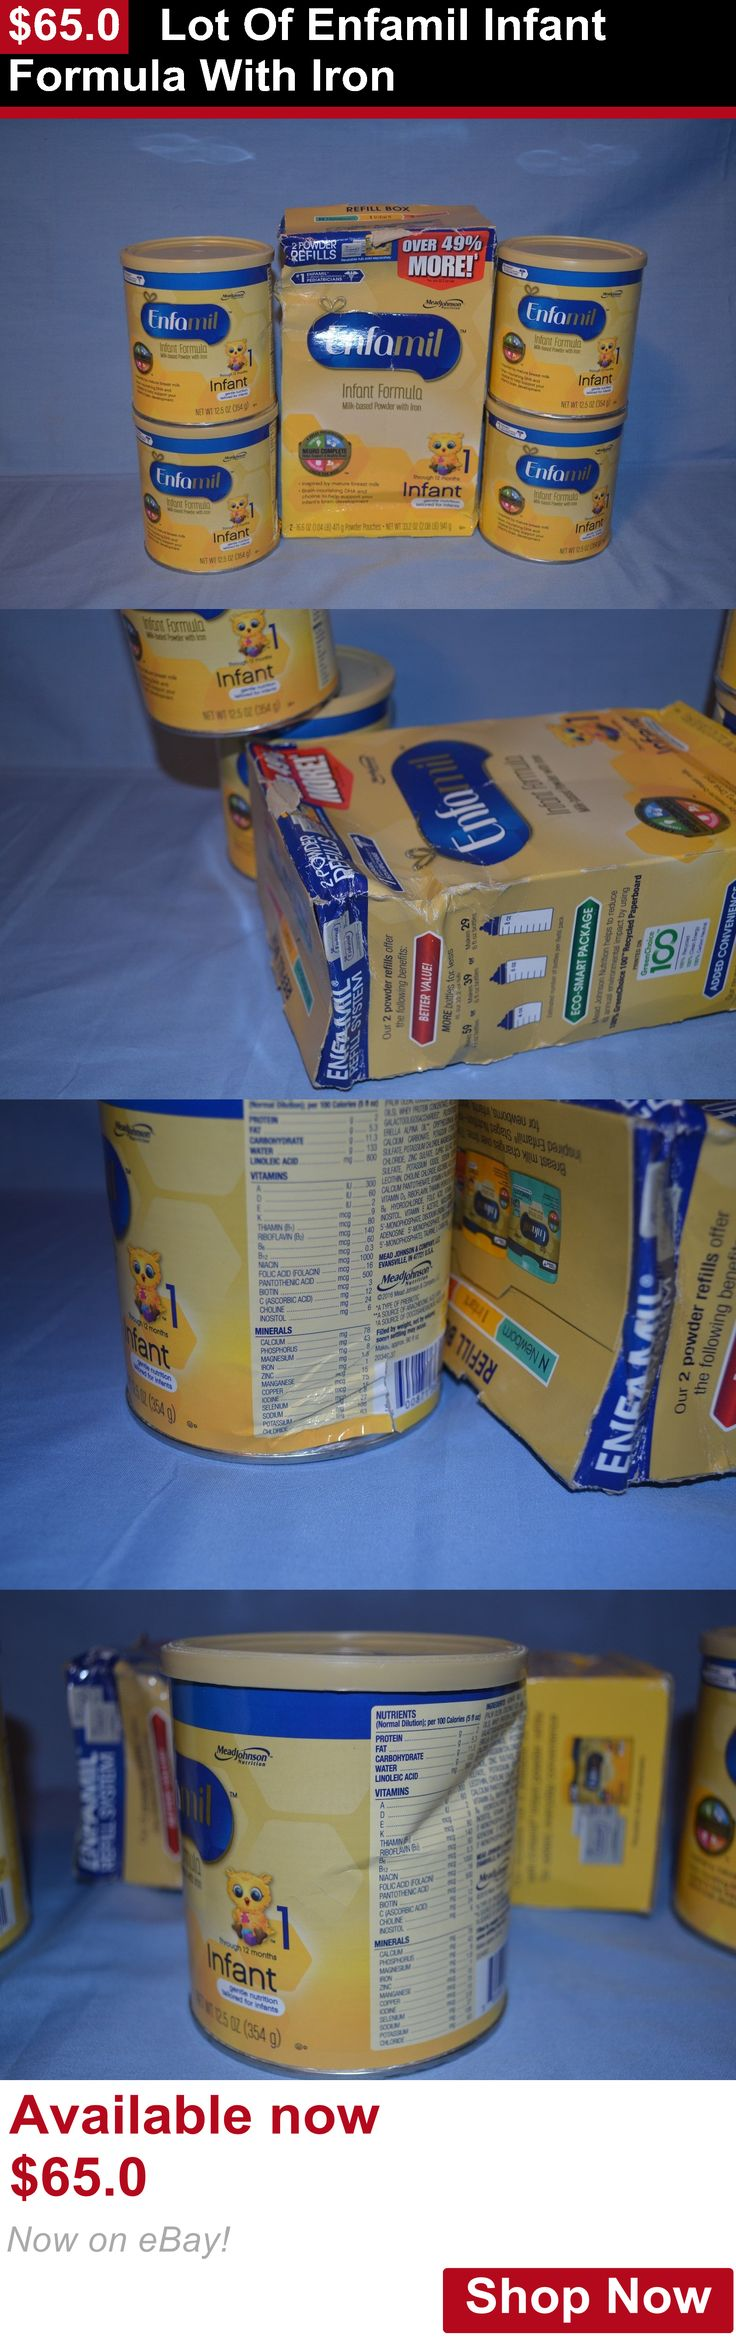 Baby Formula: Lot Of Enfamil Infant Formula With Iron BUY IT NOW ONLY: $65.0